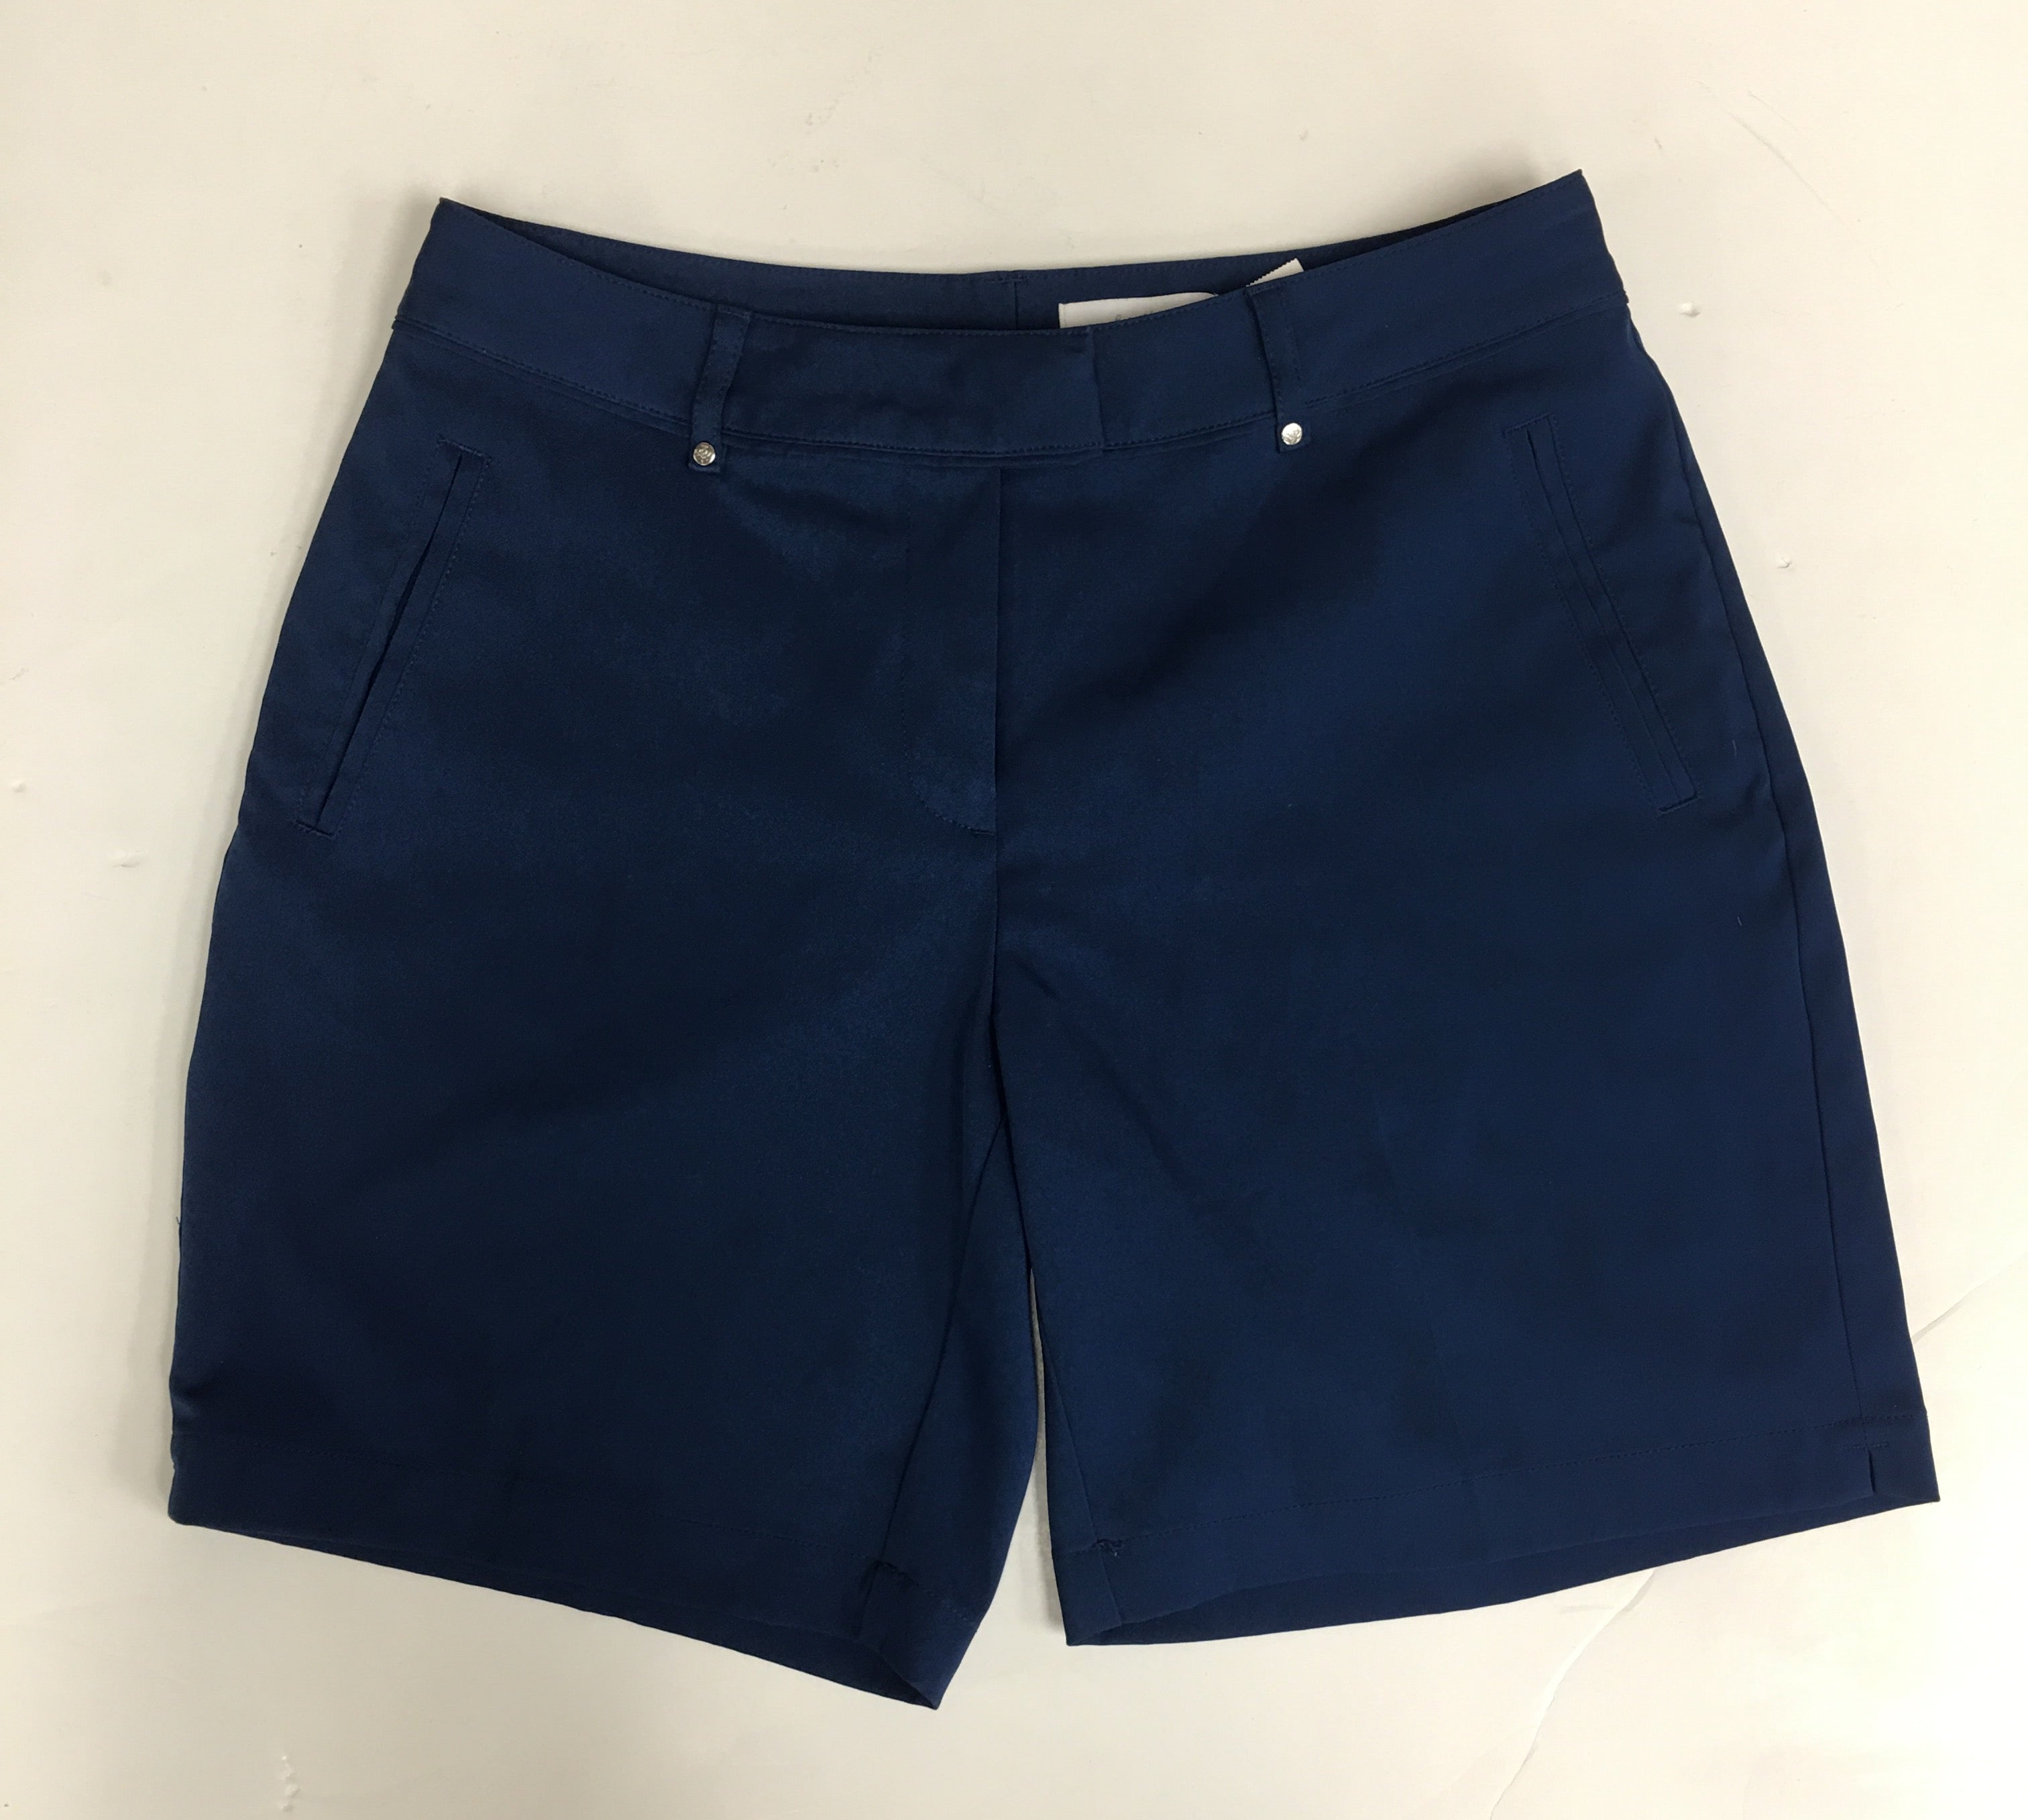 Primary Photo - BRAND: LADY HAGEN <BR>STYLE: ATHLETIC SHORTS <BR>COLOR: BLUE <BR>SIZE: XS <BR>OTHER INFO: GOLFSHORTS <BR>SKU: 198-19888-33266